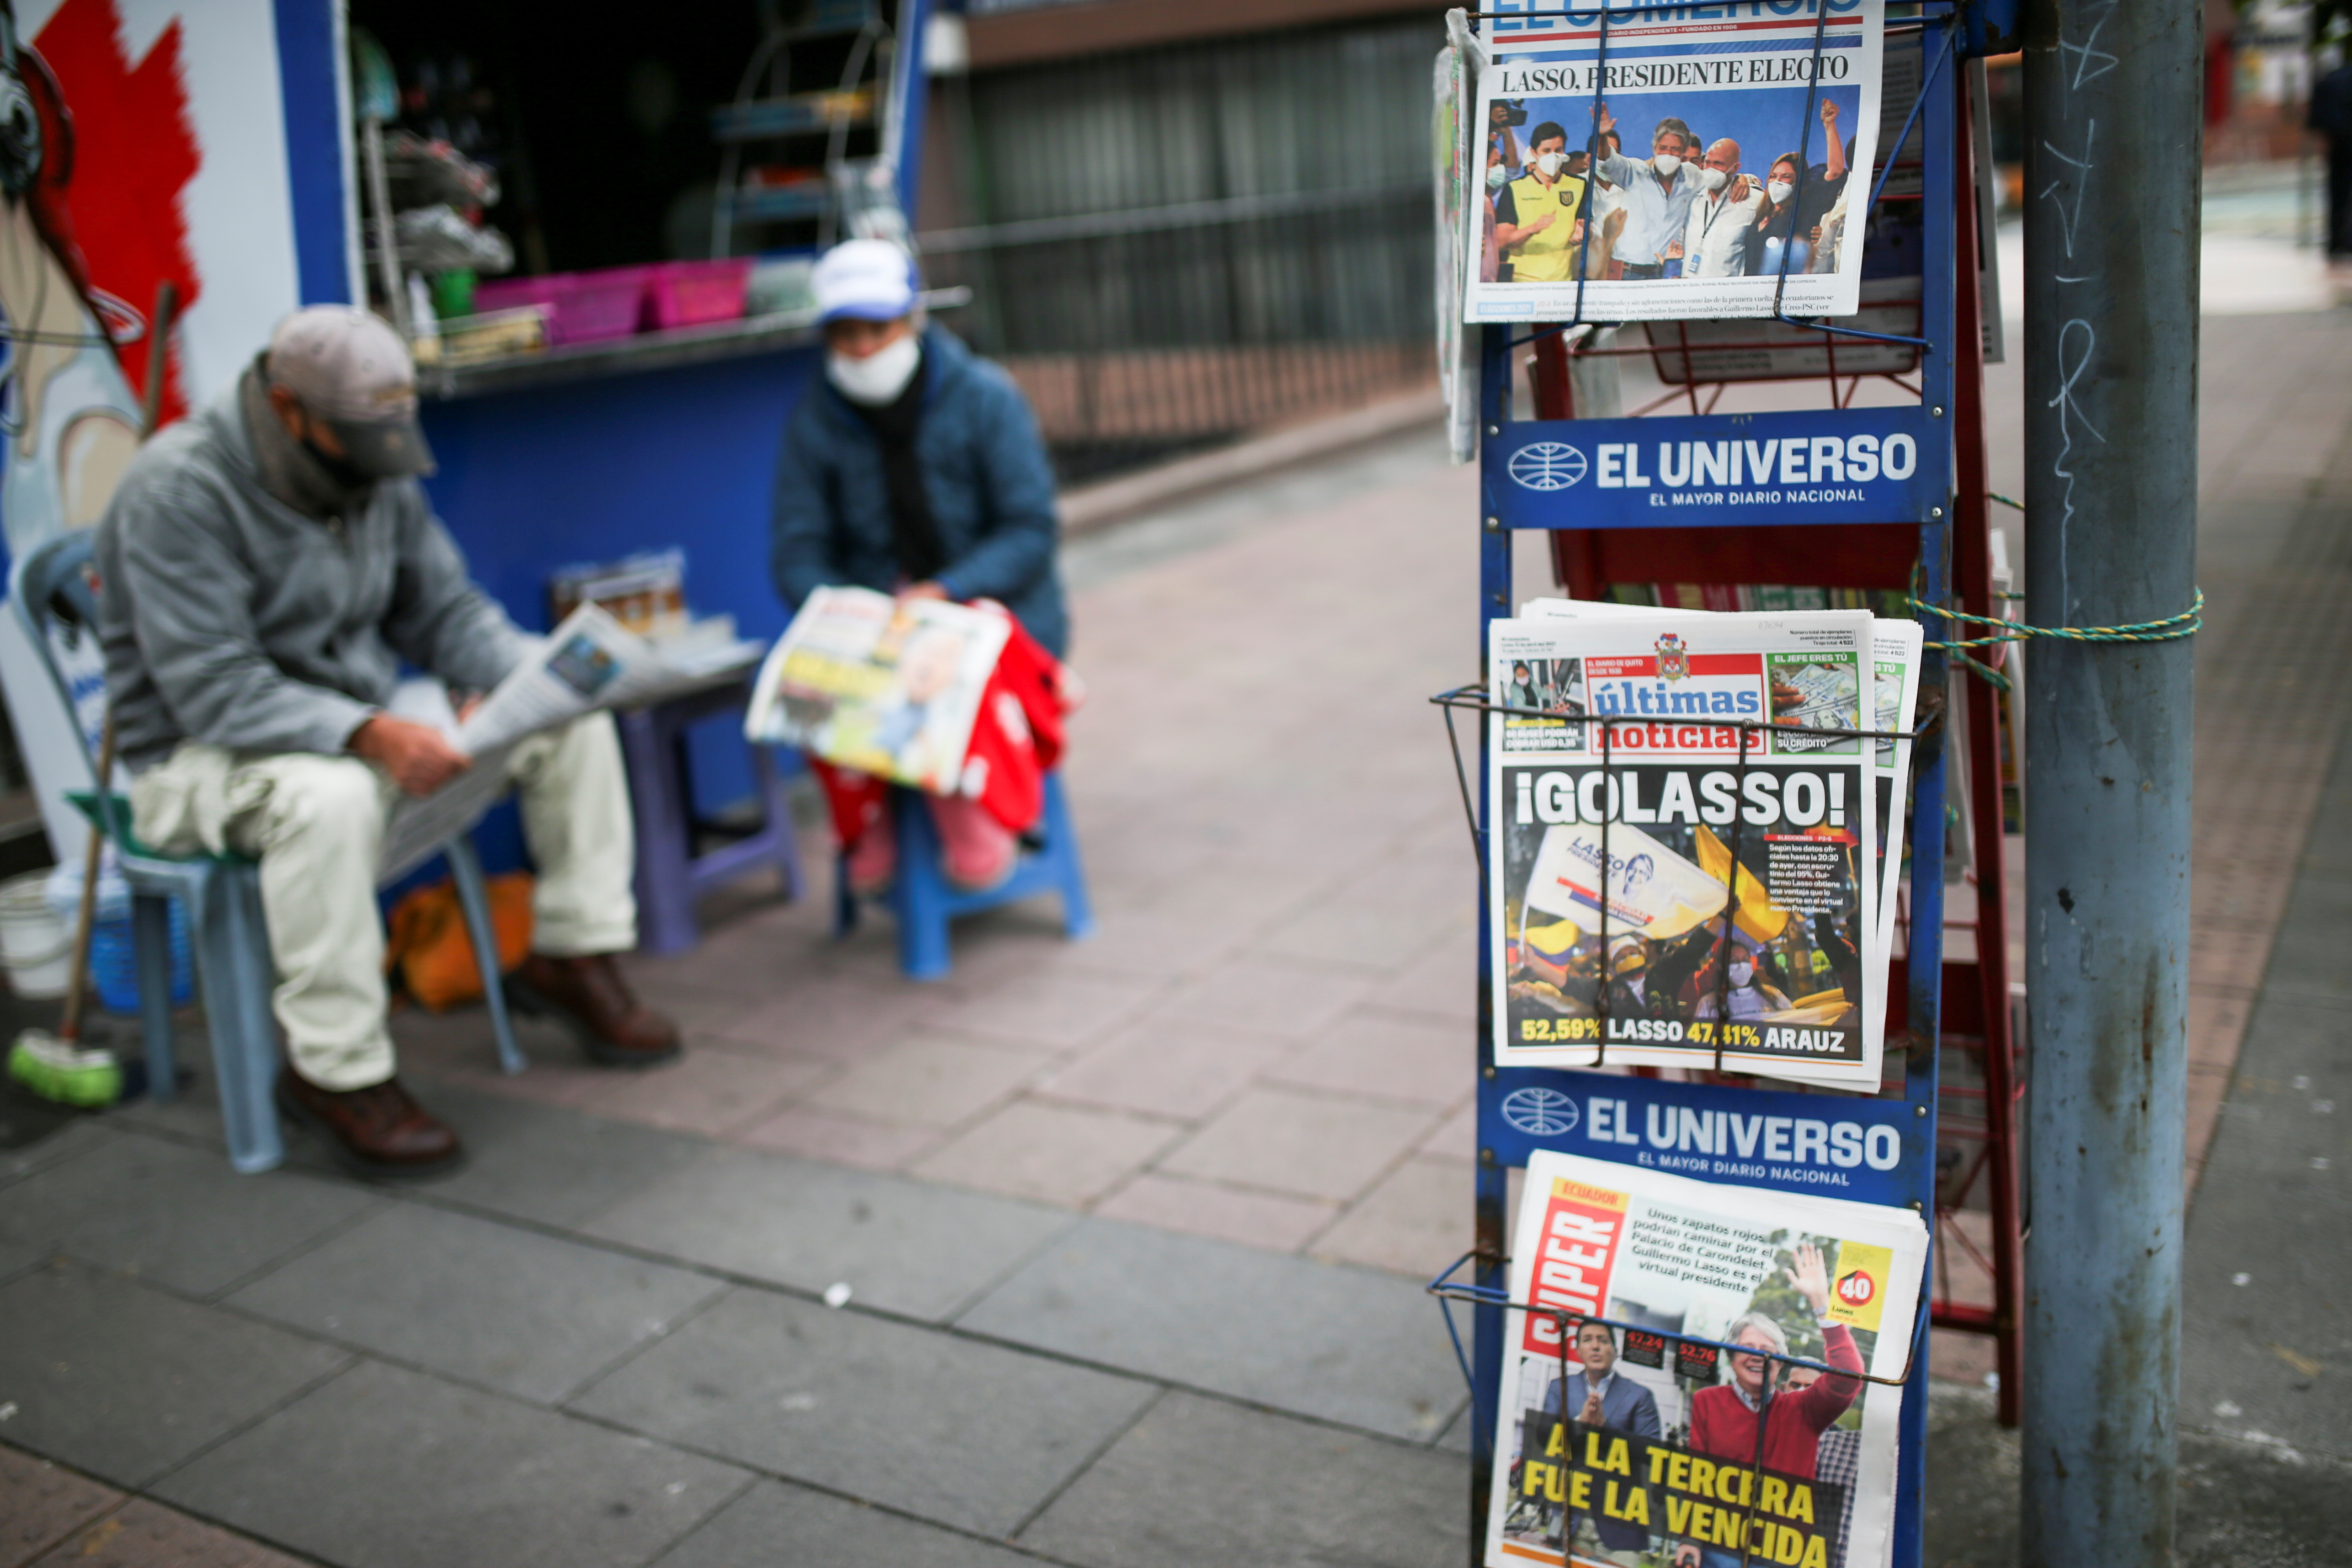 A woman sells newspapers with pictures of presidential candidate Guillermo Lasso, the winner of the presidential election, in Quito, Ecuador April 12, 2021. REUTERS/Luisa Gonzalez